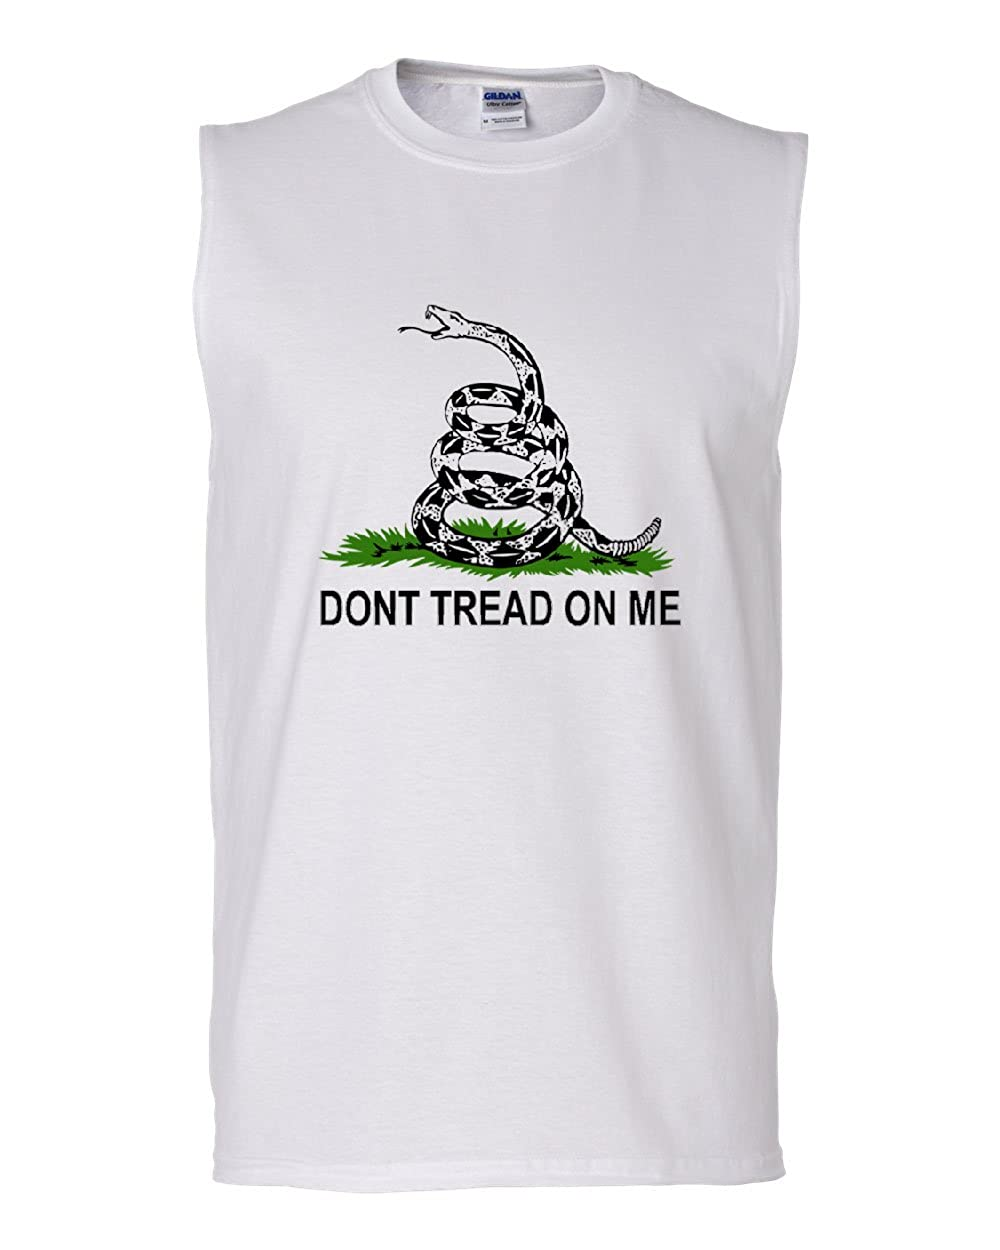 Dont Tread On Me Muscle Shirt Gadsden Flag Rattle Snake